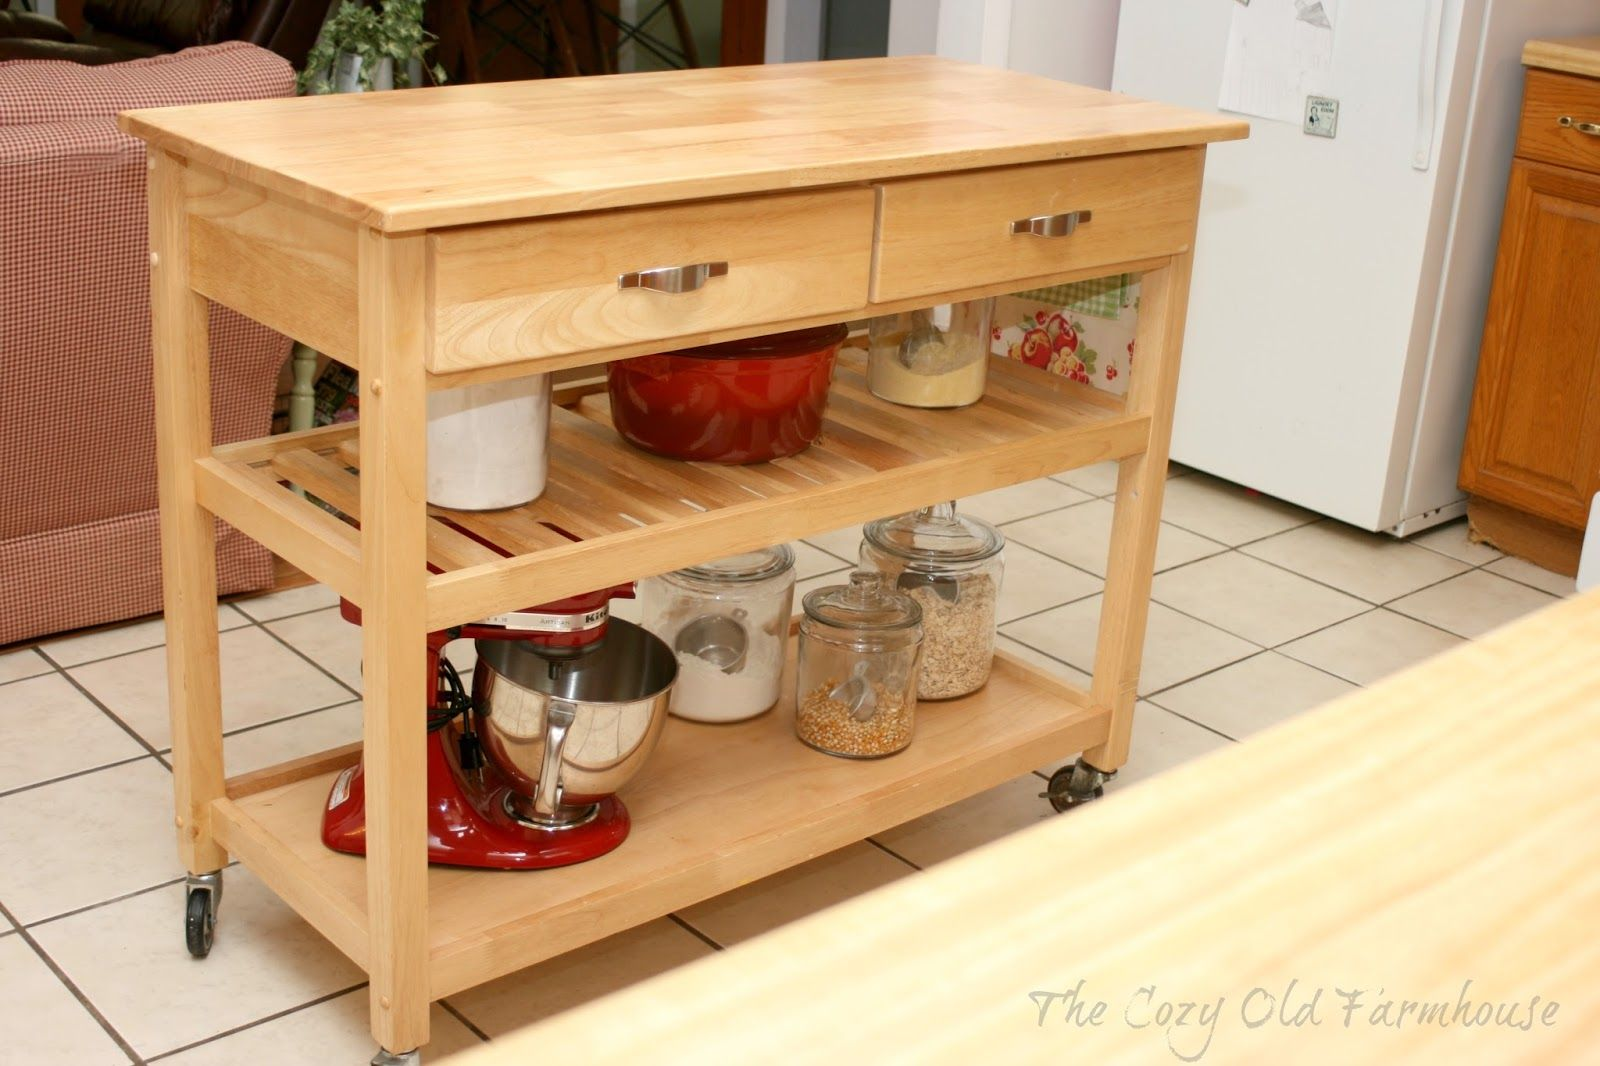 diy kitchen island cart. Plain Diy Floating Kitchen Islands For People Who Want To Make The Process Of Cooking  Easier  Modern Kitchen Furniture Photos Ideas U0026 Reviews And Diy Island Cart E